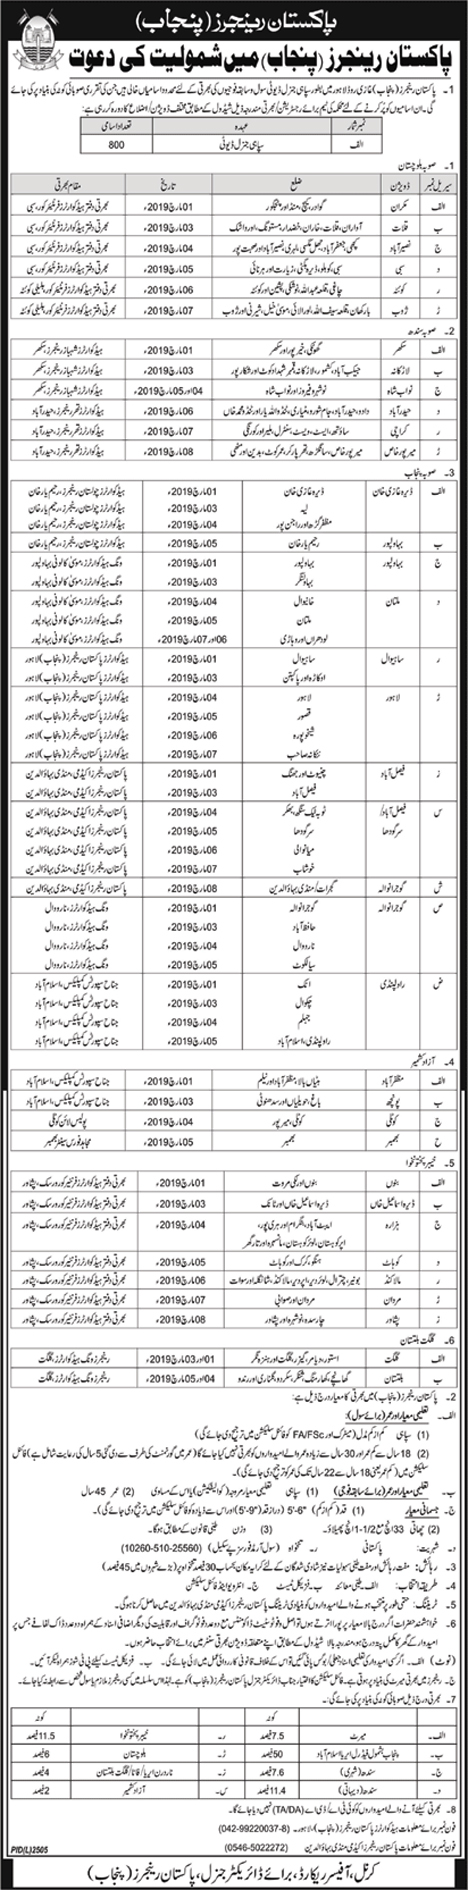 Pakistan Rangers Jobs Feb 2019 Punjab Sipahi General Duty Latest